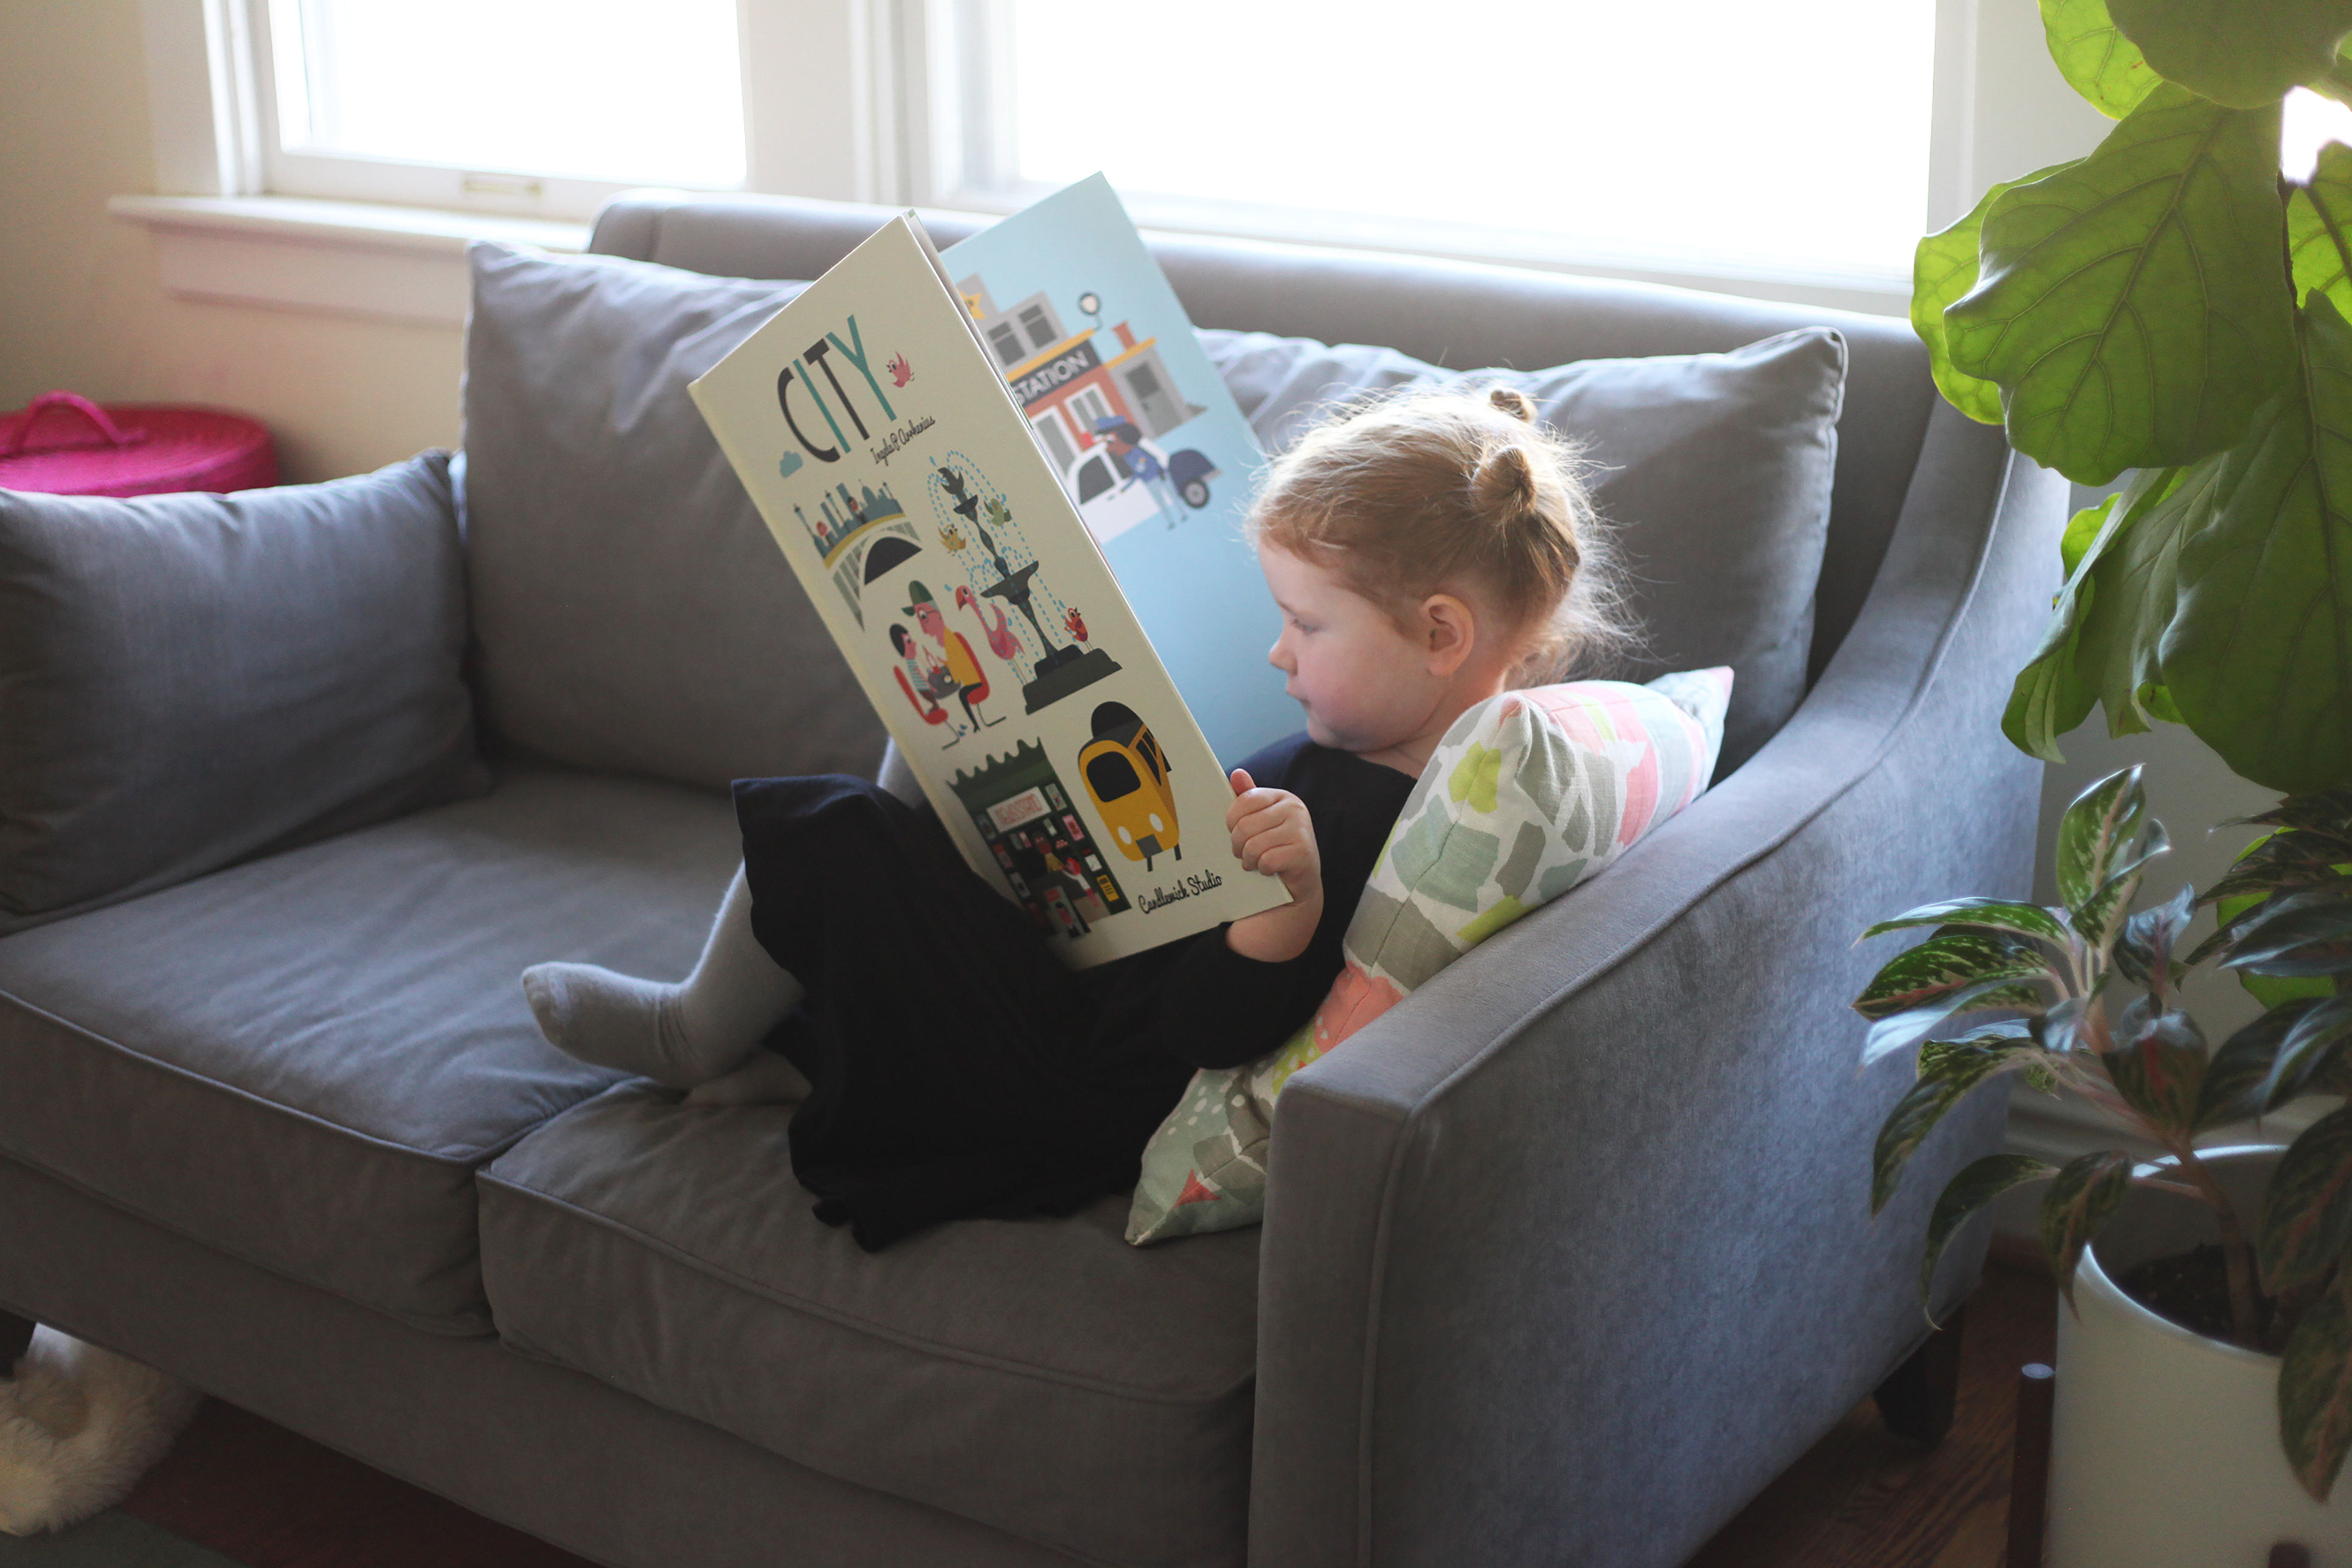 Child-Reading-Oversize-Book-On-Couch